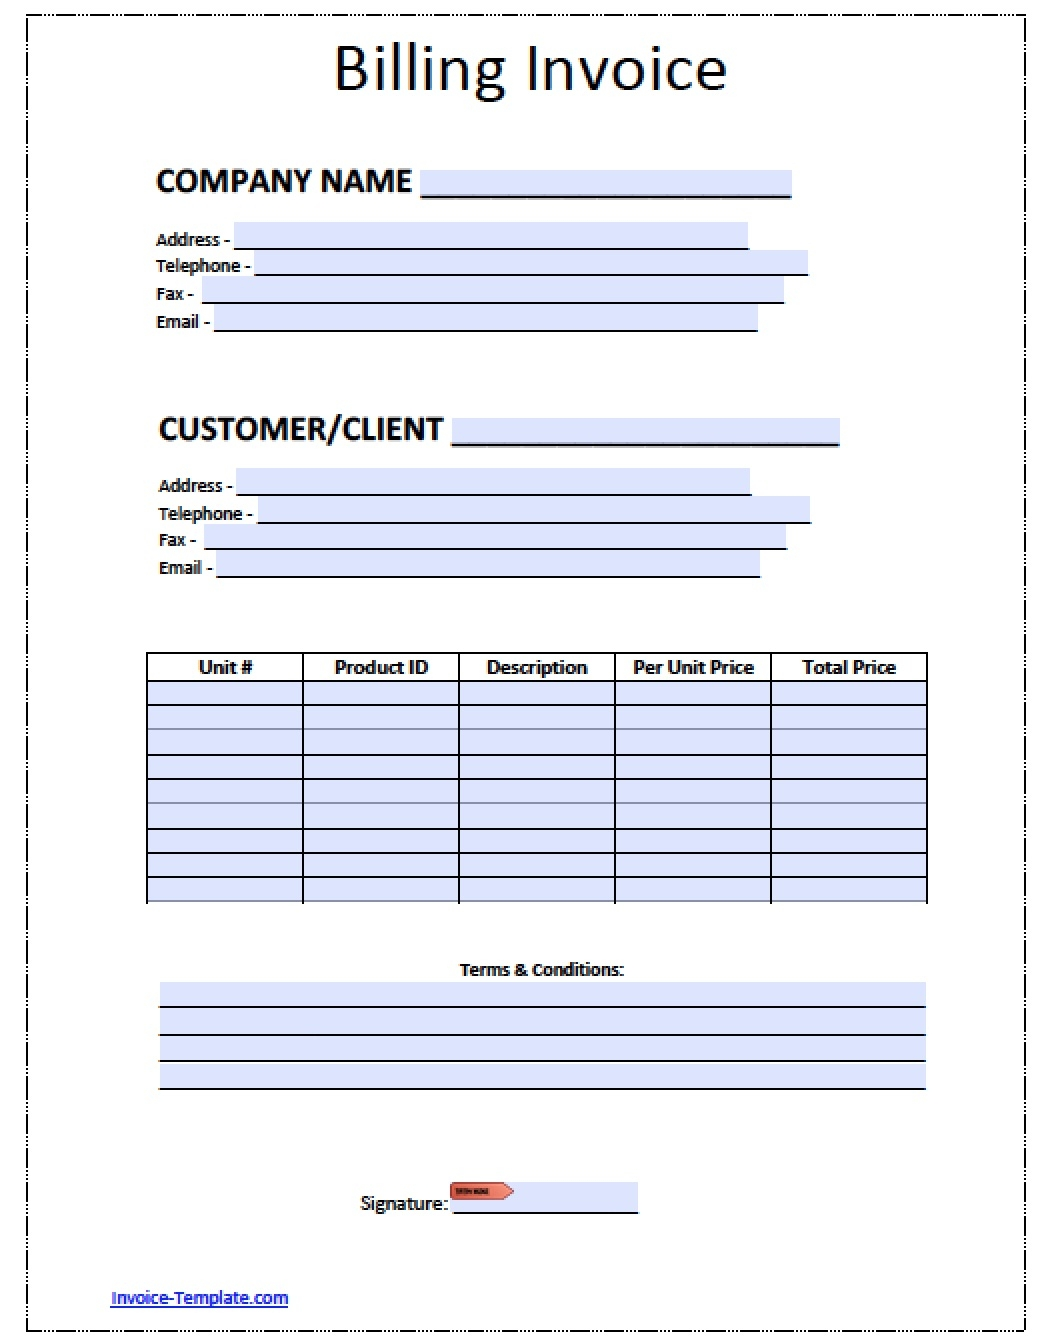 free blank invoice templates in pdf word amp excel billing invoice templates